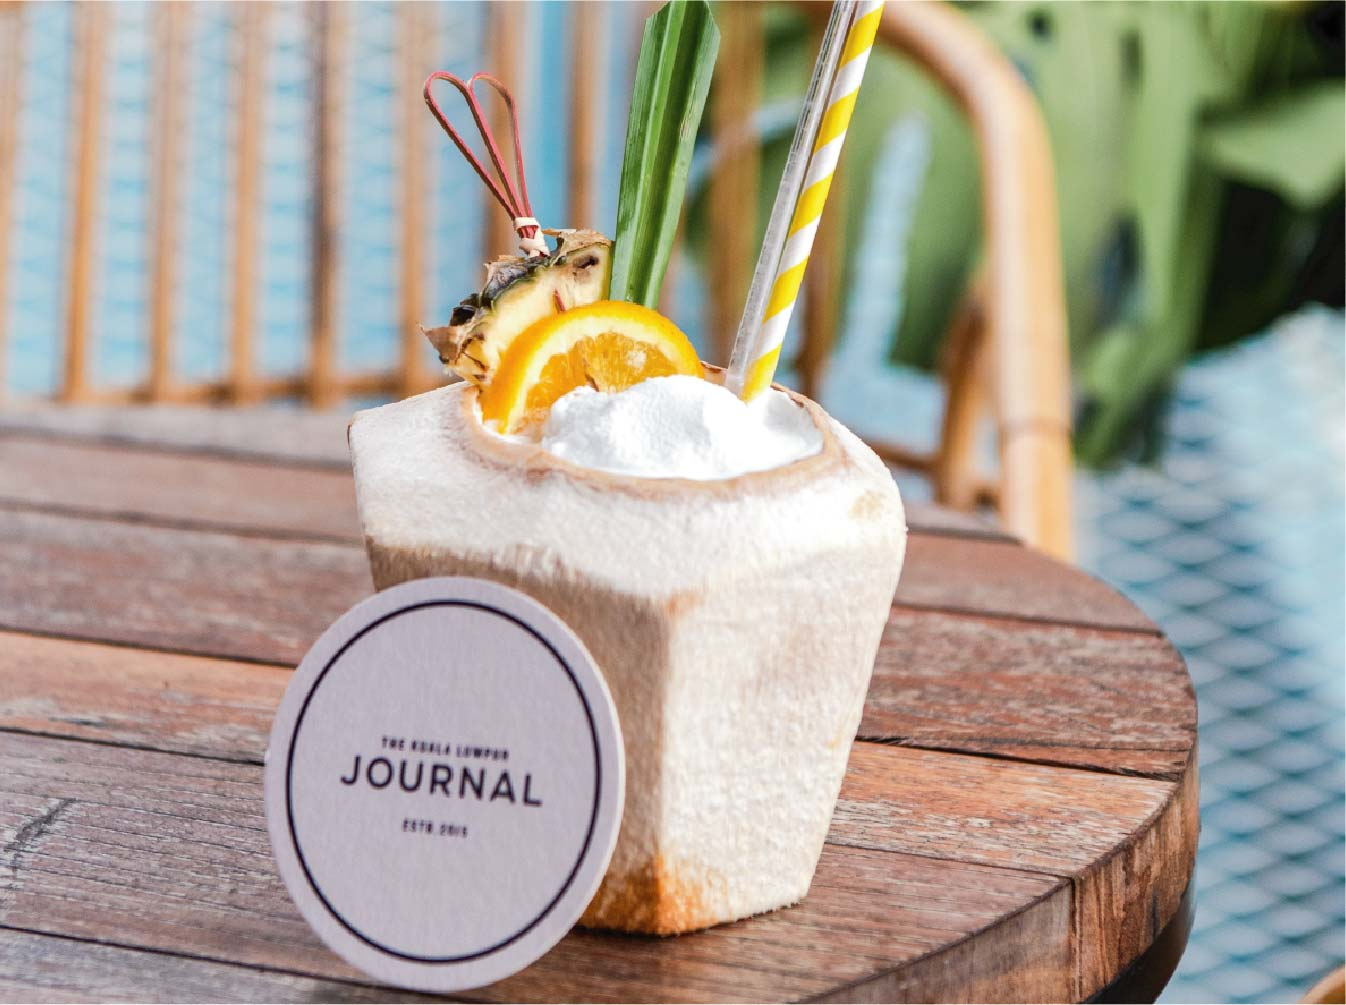 King coconut water with a twist at KL Journal Hotel